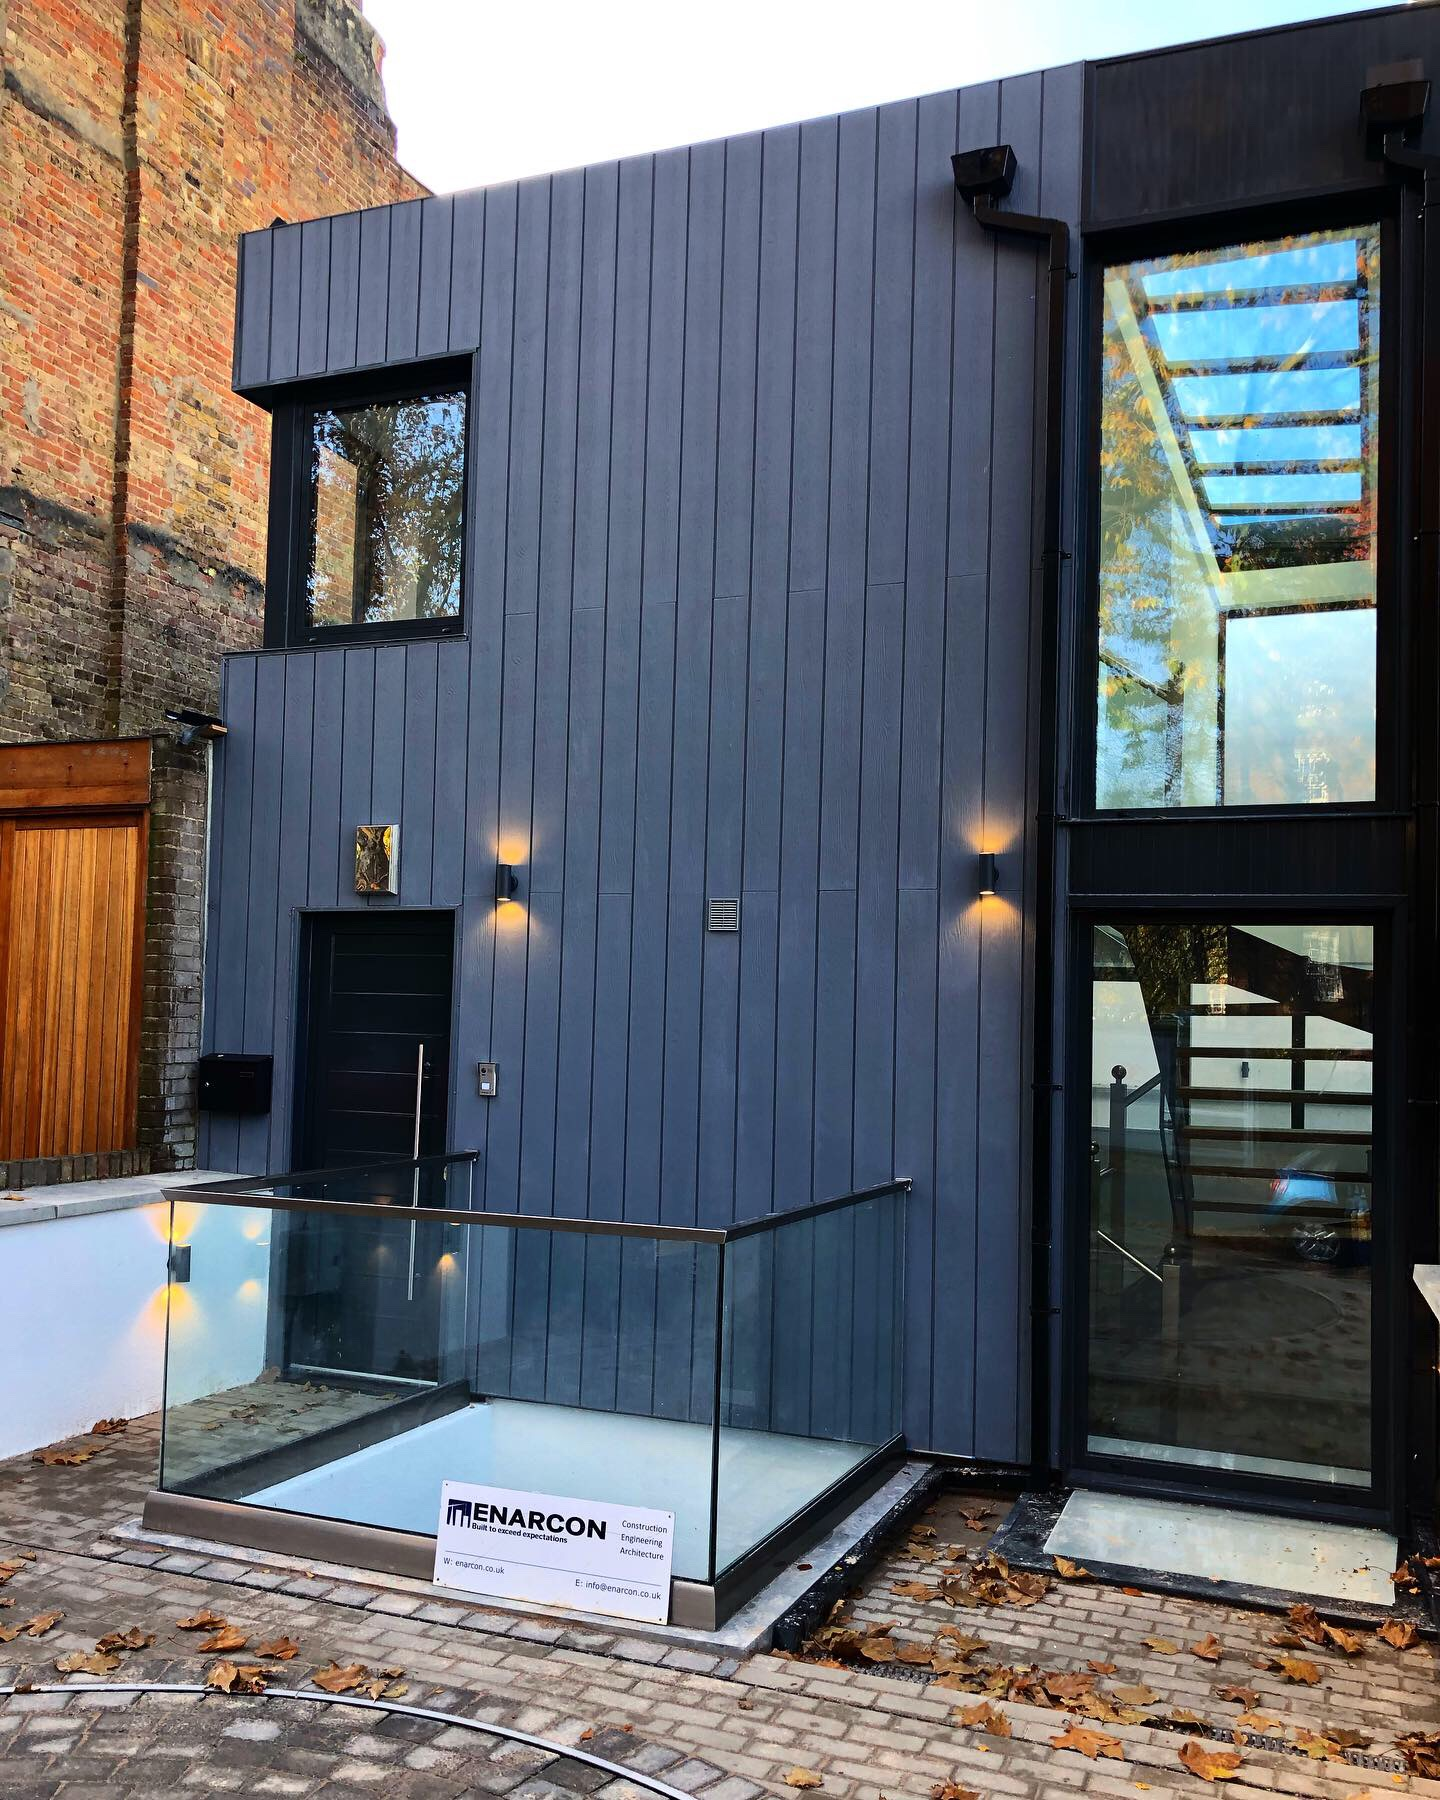 Semi-detached house in Highgate, London consisting of basement and 2 floors